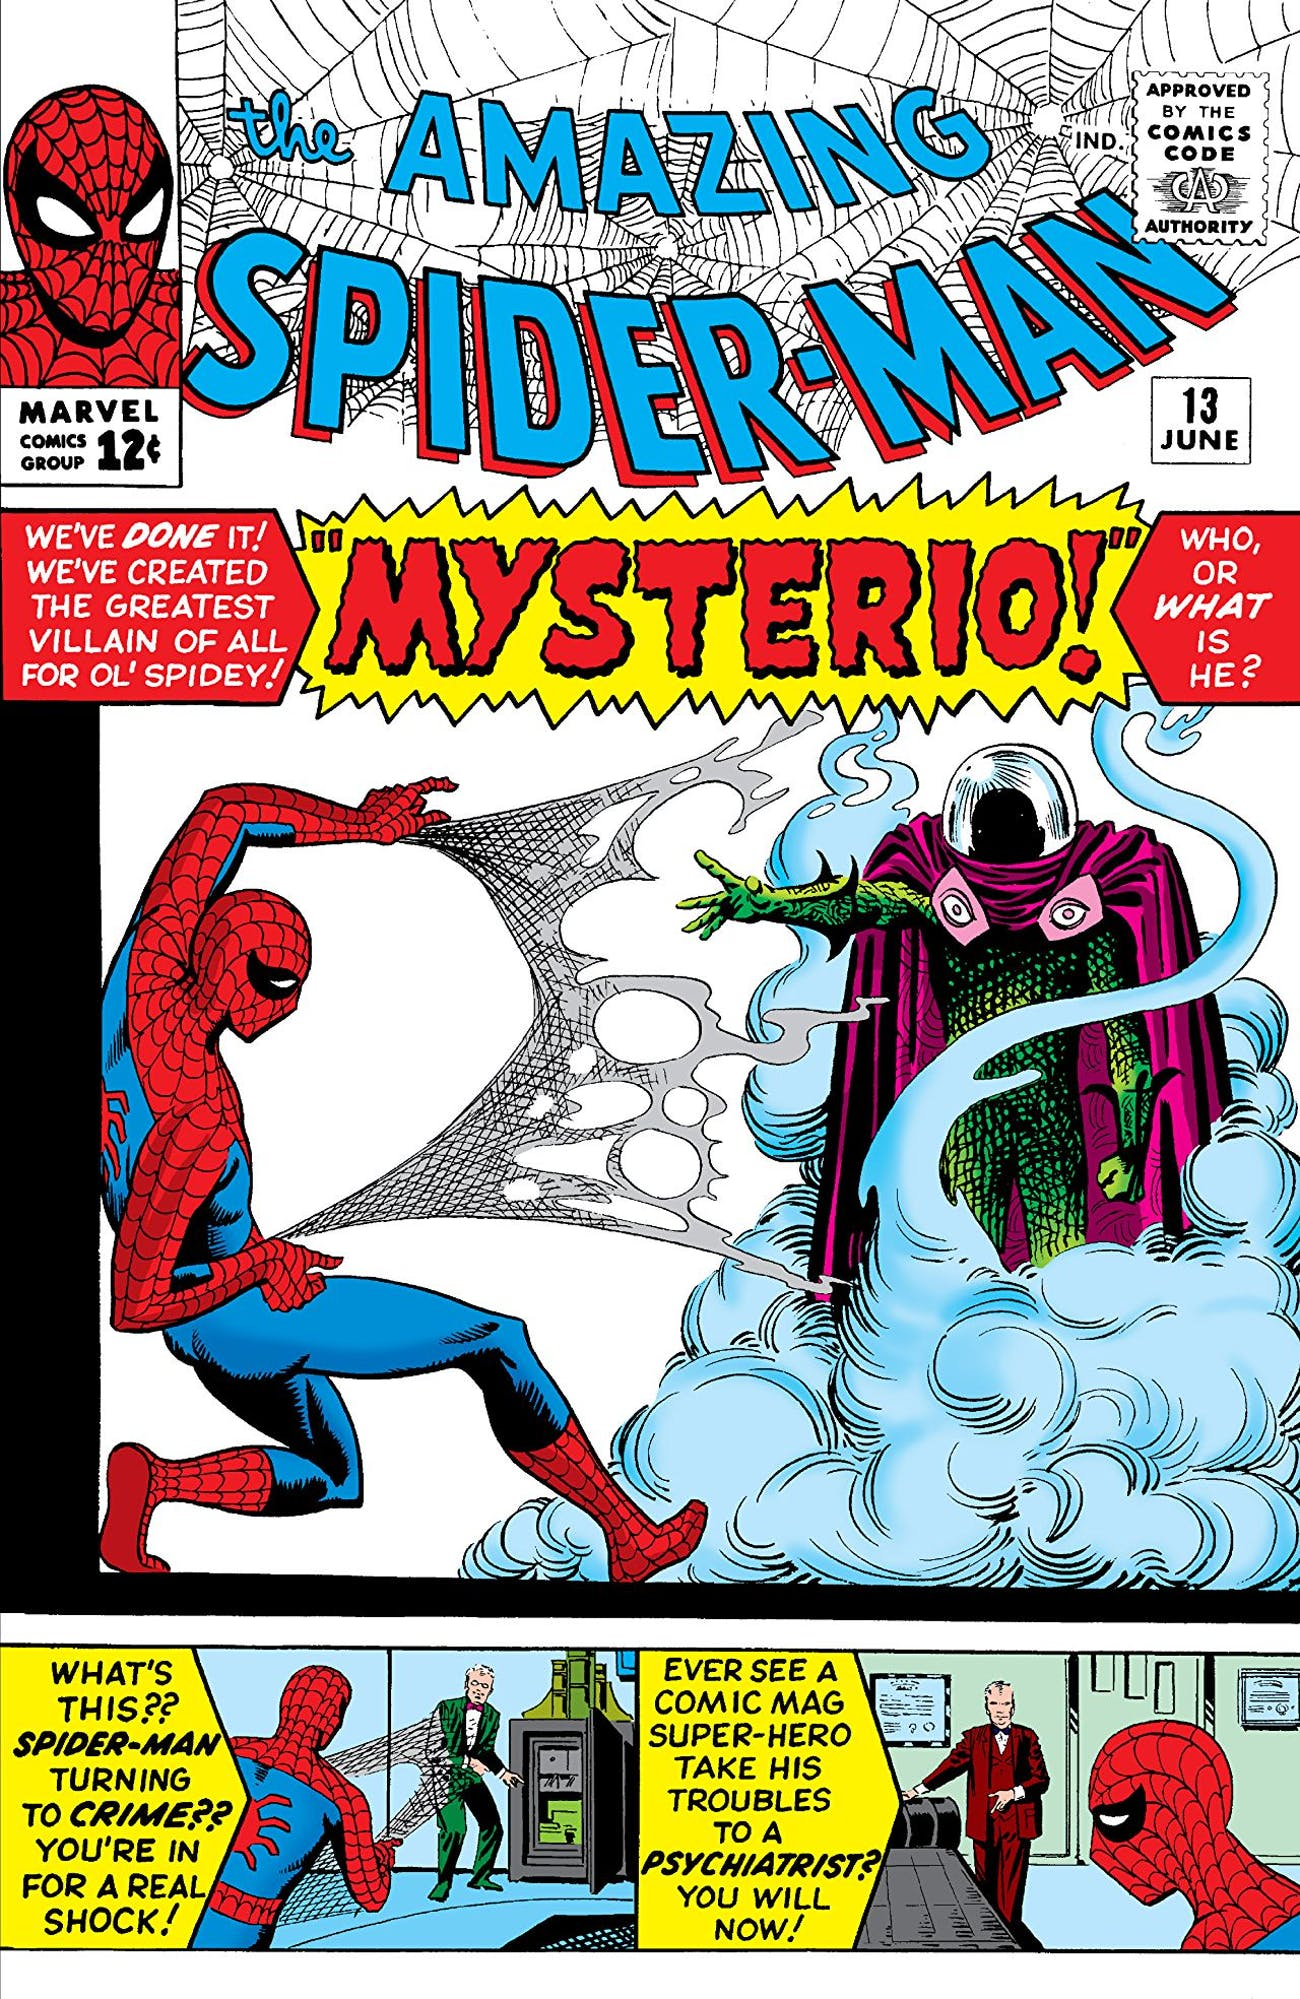 Image result for amazing spider-man mysterio debut